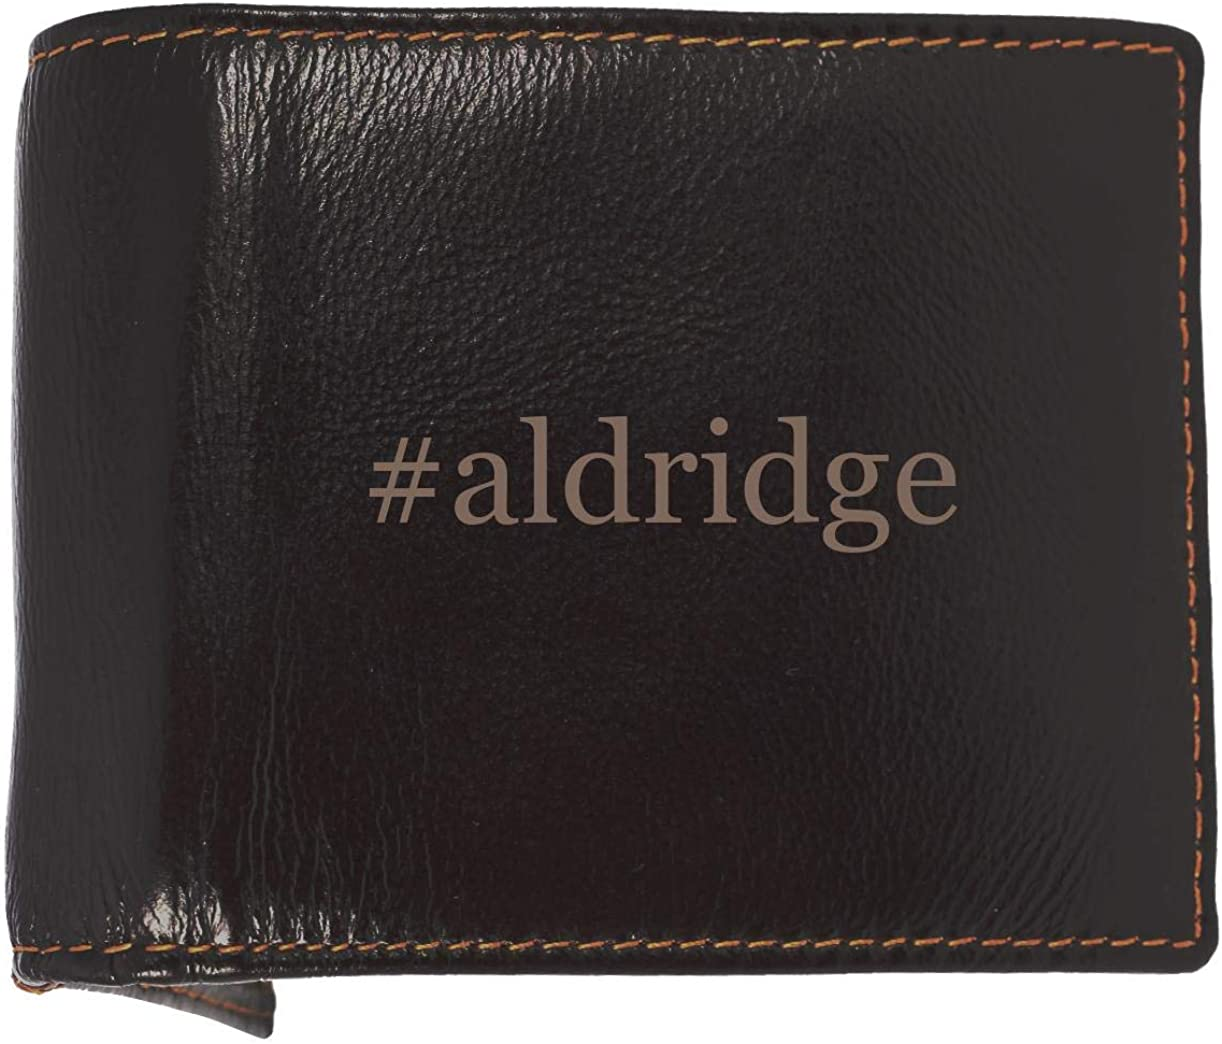 #aldridge - Soft Hashtag Cowhide Genuine Engraved Bifold Leather Wallet 61Q1l-7wgNL